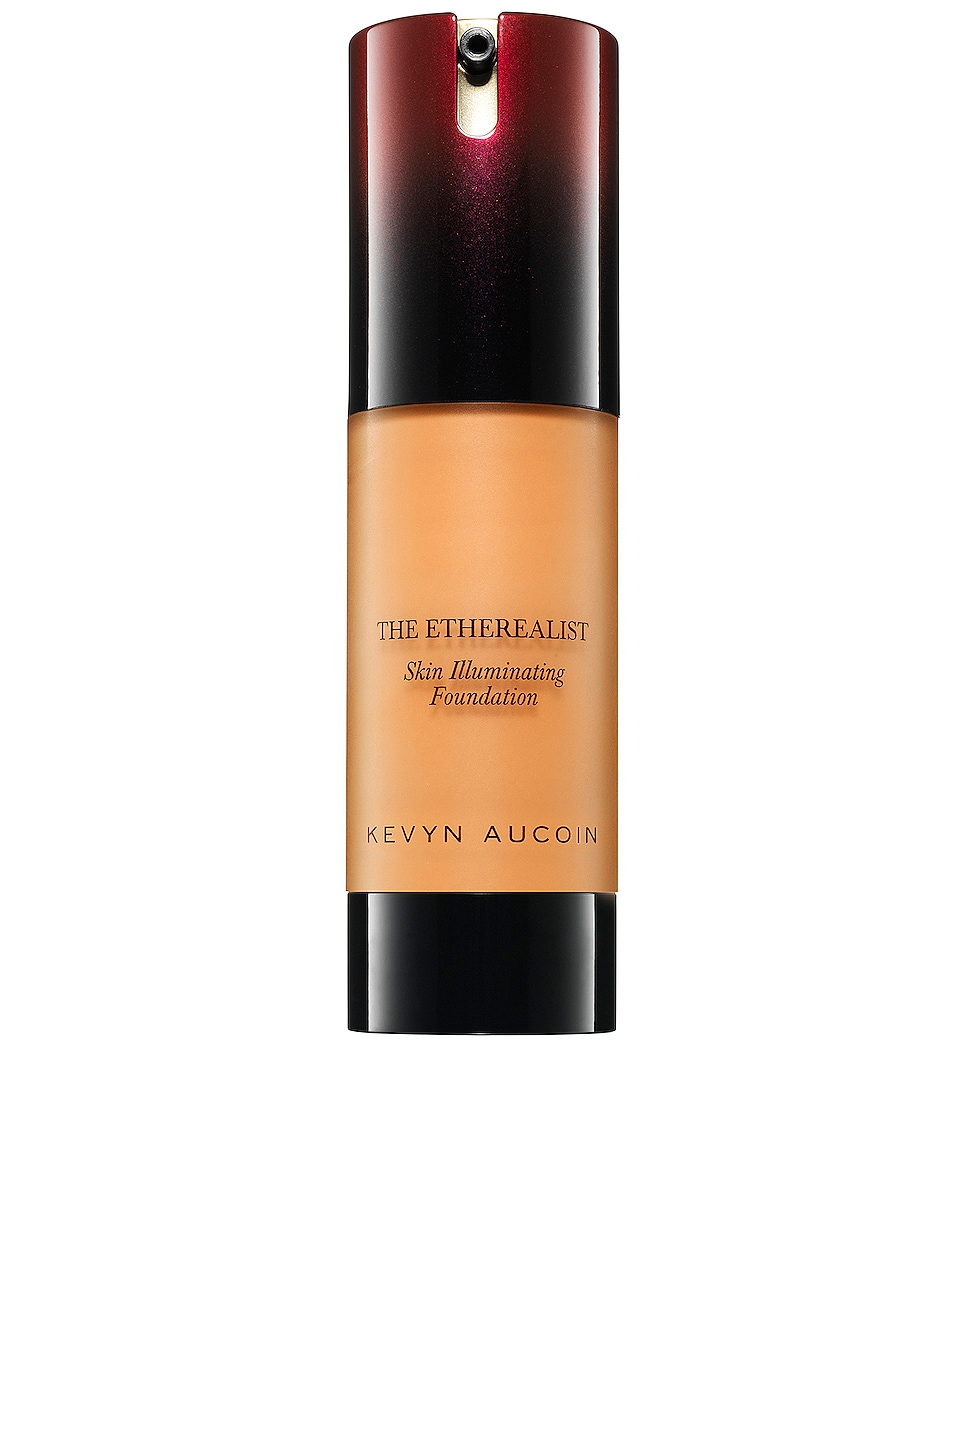 Kevyn Aucoin The Etherealist Skin Illuminating Foundation in Deep 12